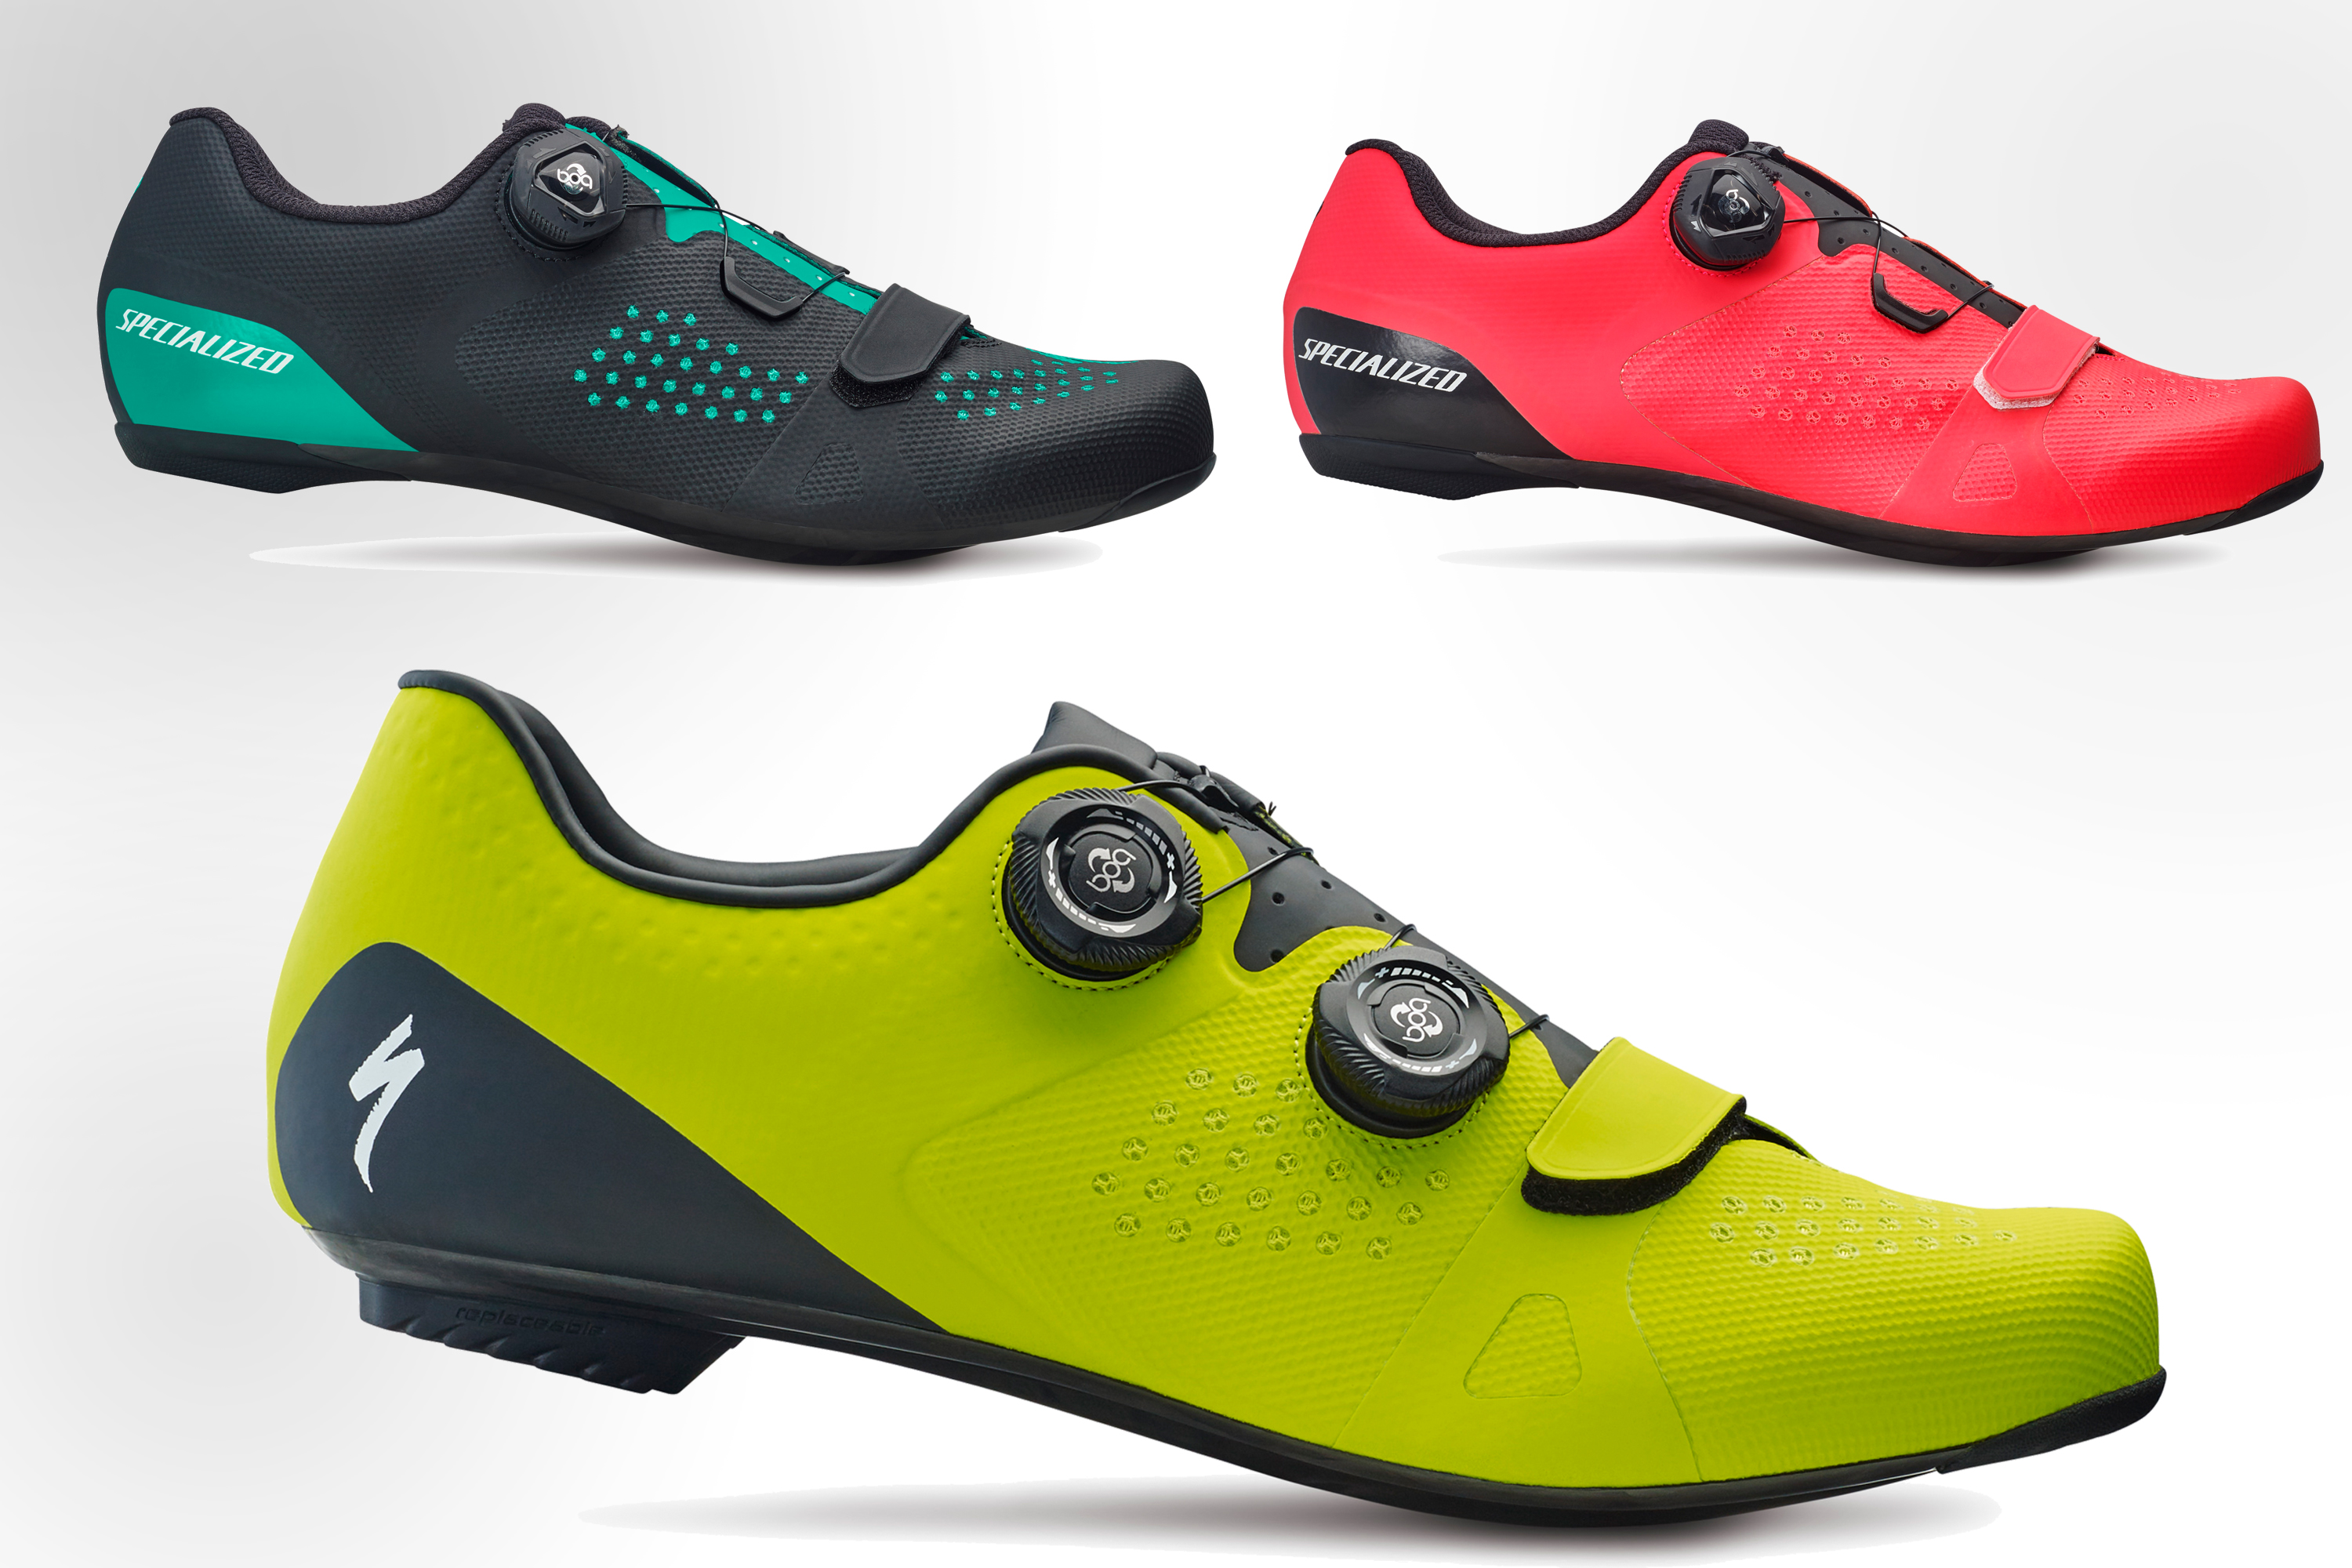 535914f1 More stunning shoes from Specialized thanks to a redesign of its ...